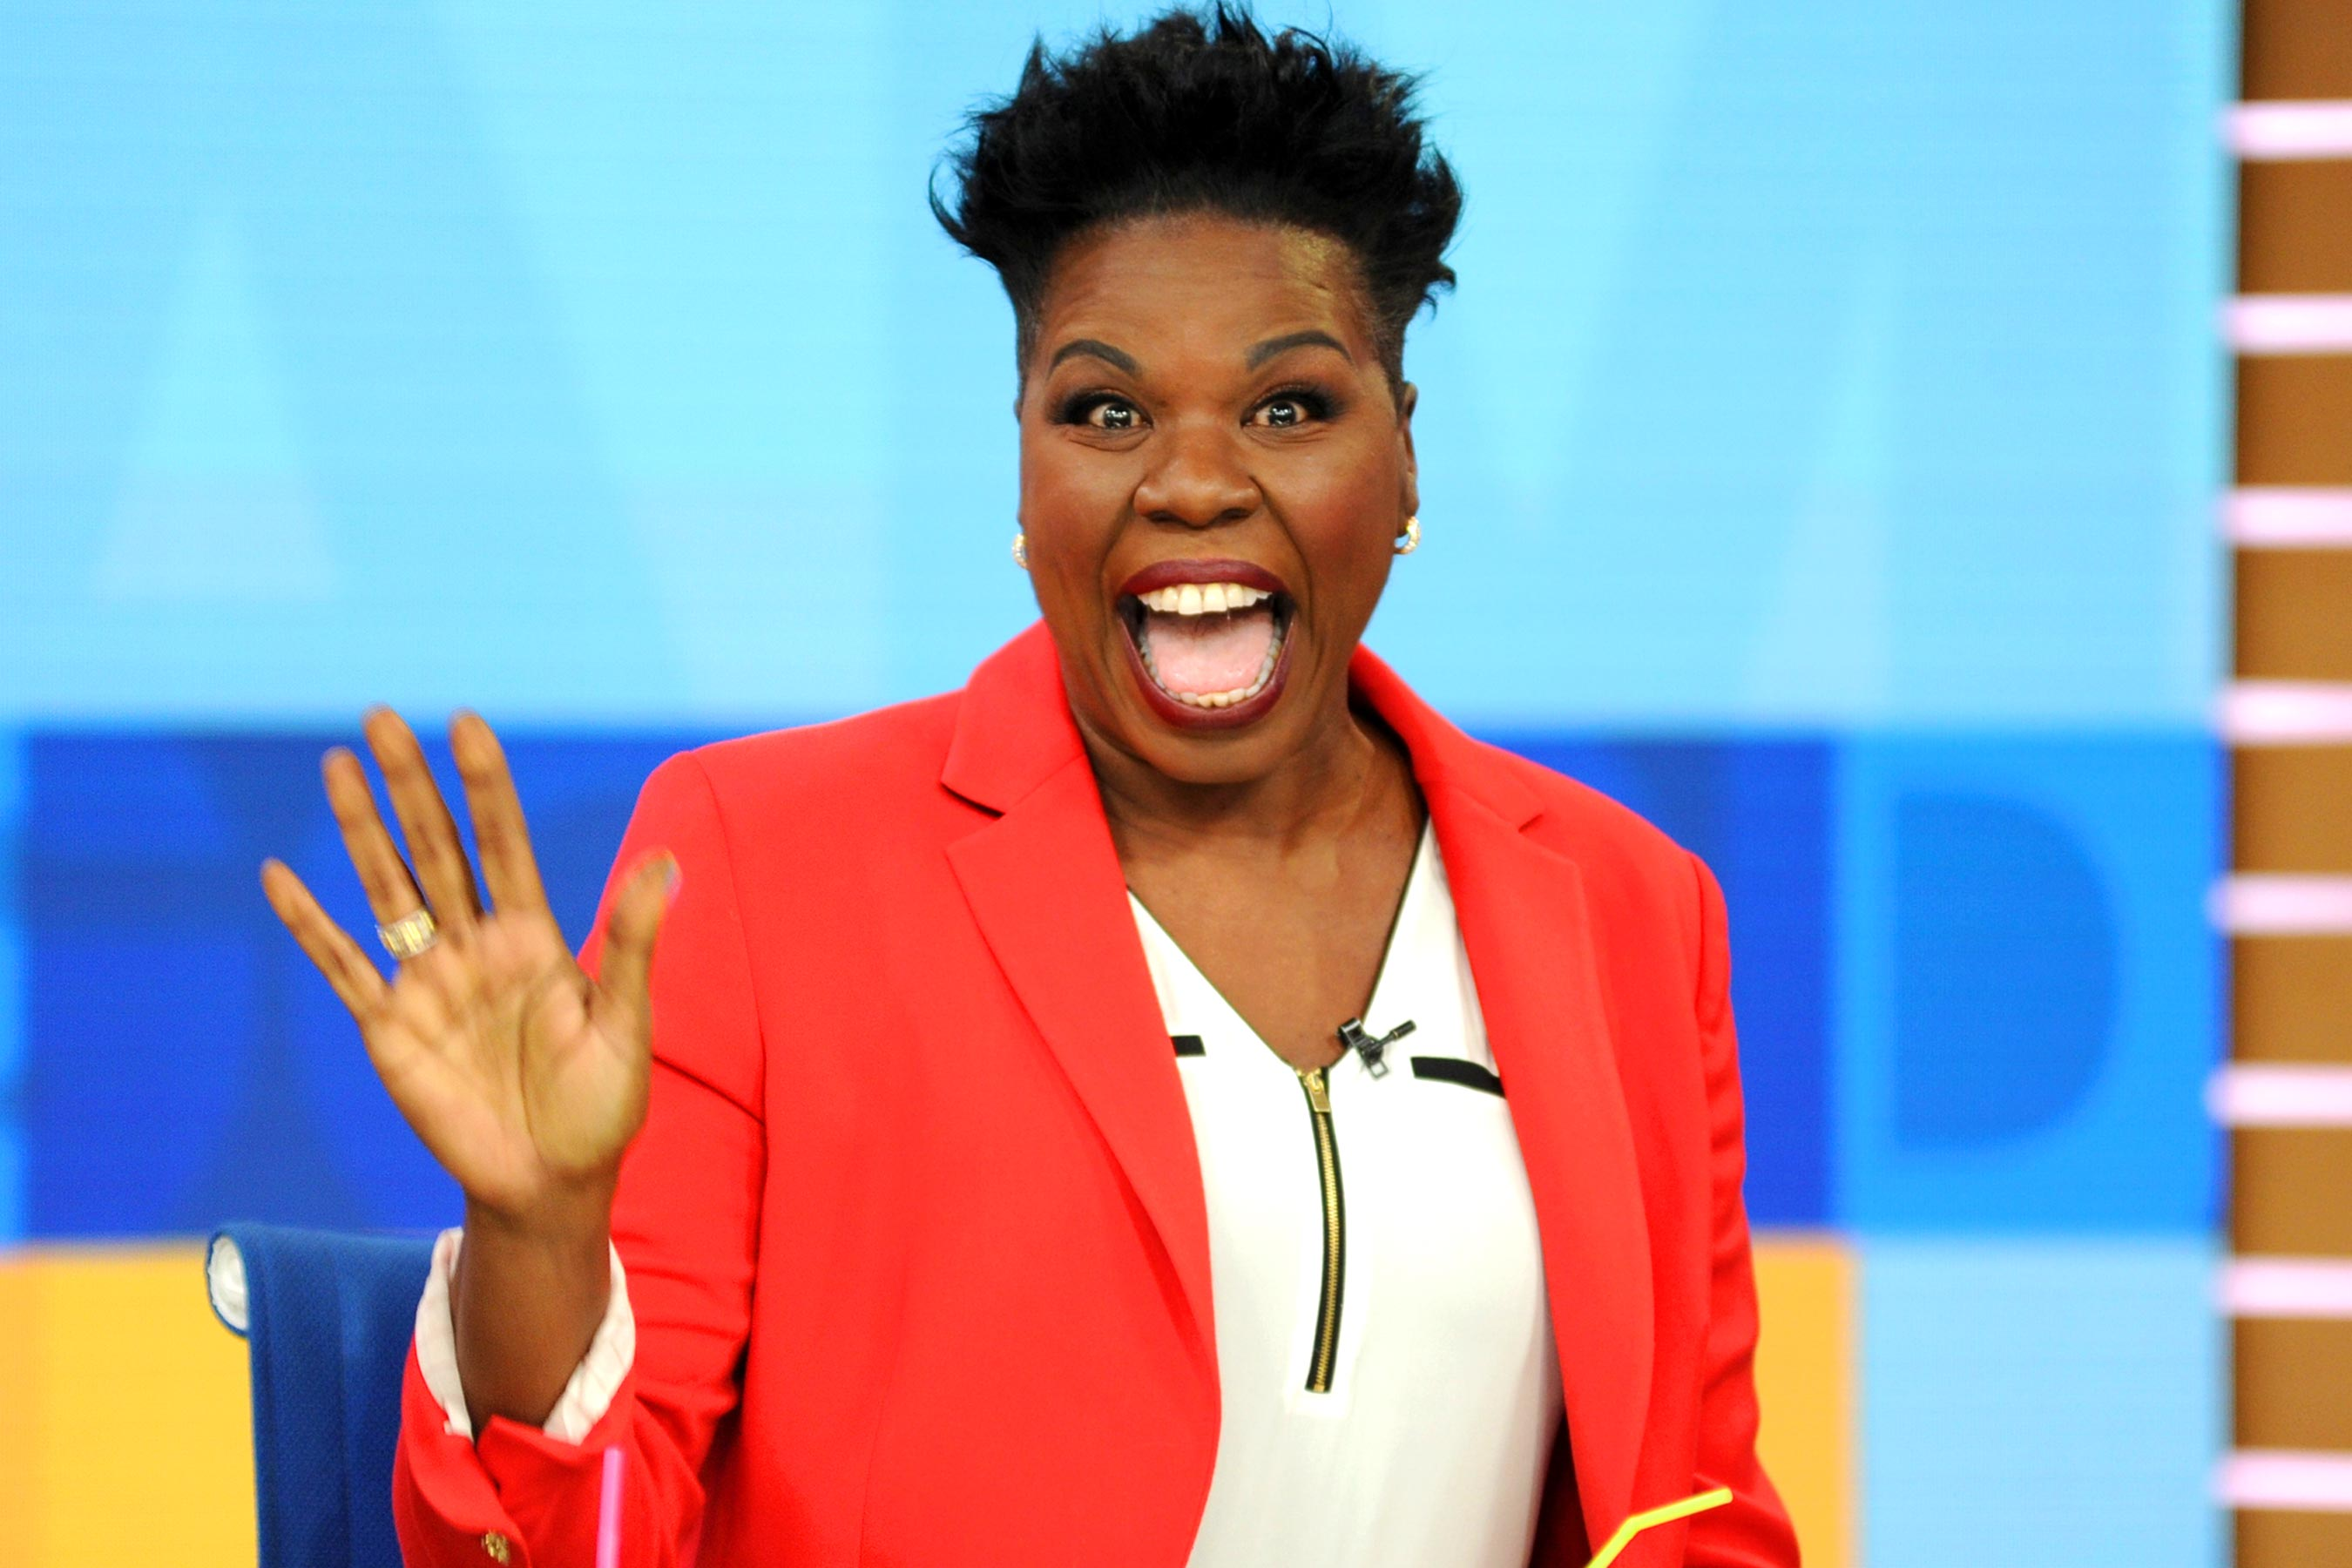 Olympics 2018: Leslie Jones has arrived in PyeongChang